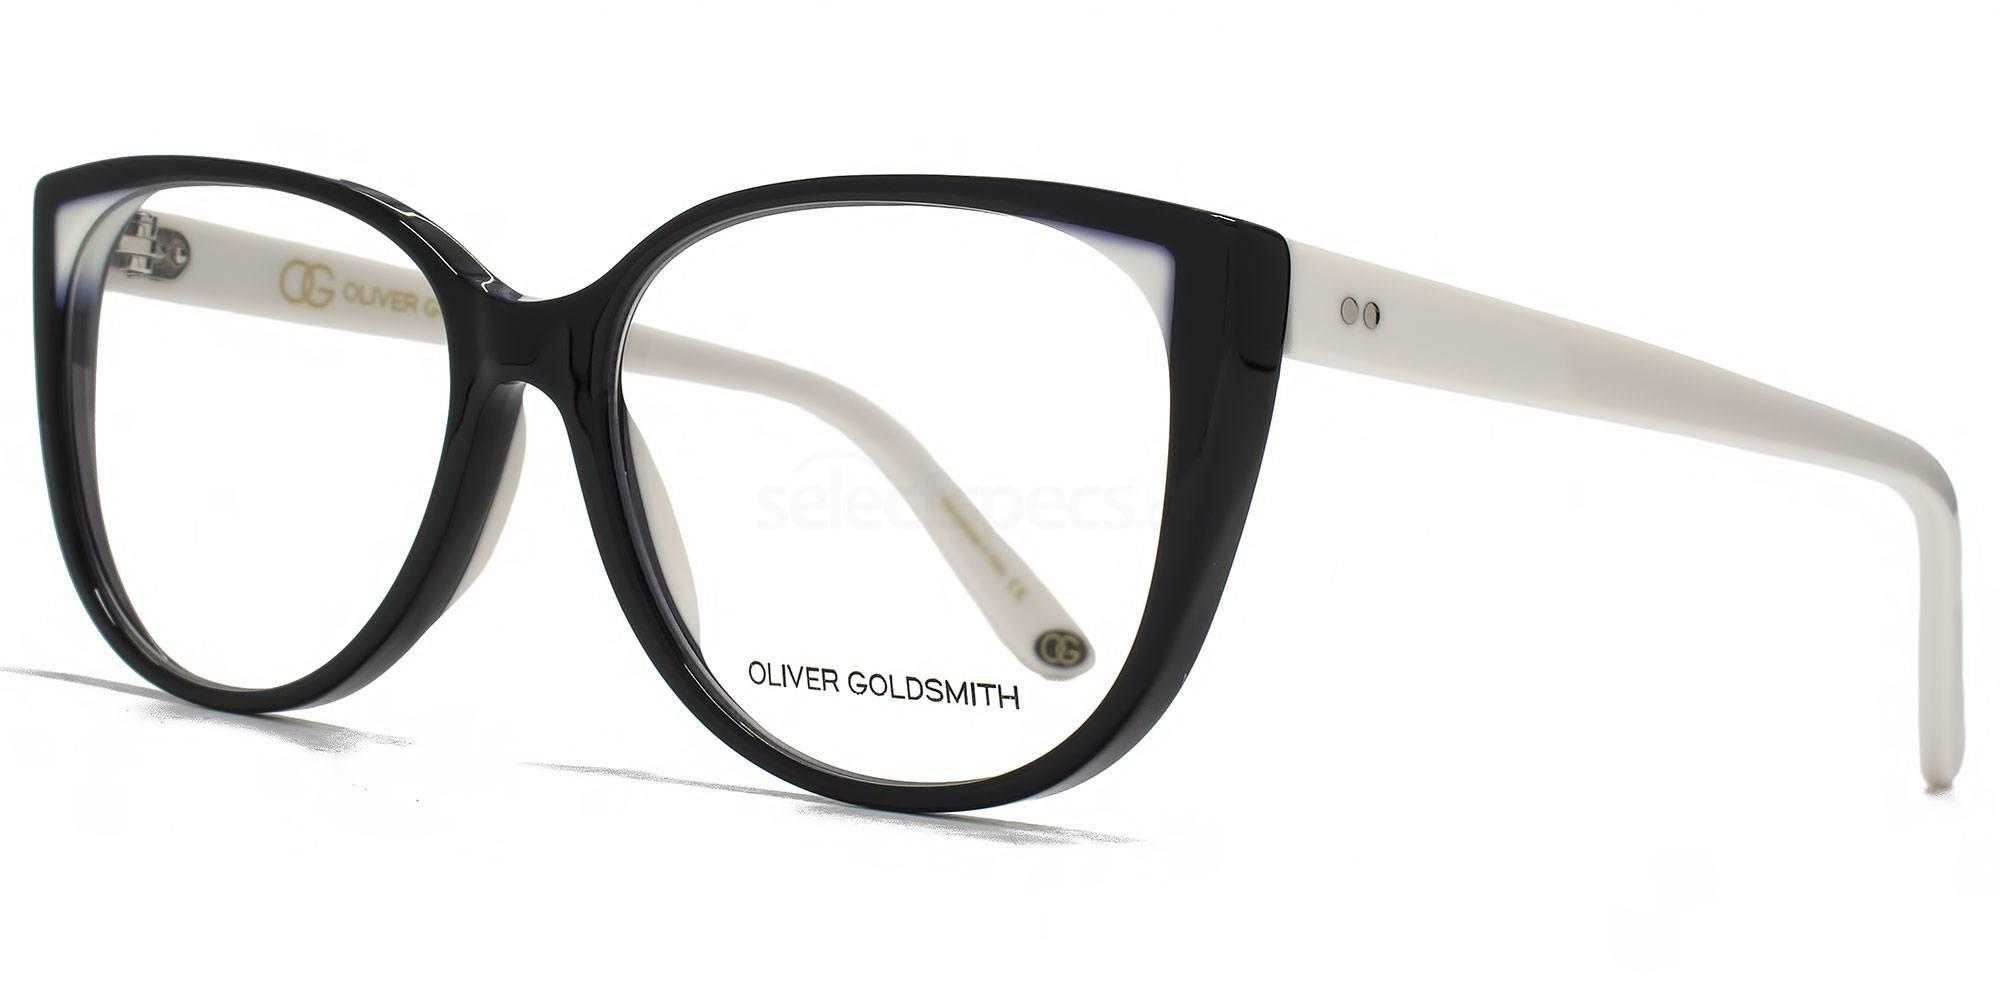 01 OLI021 - LILLY Glasses, Oliver Goldsmith